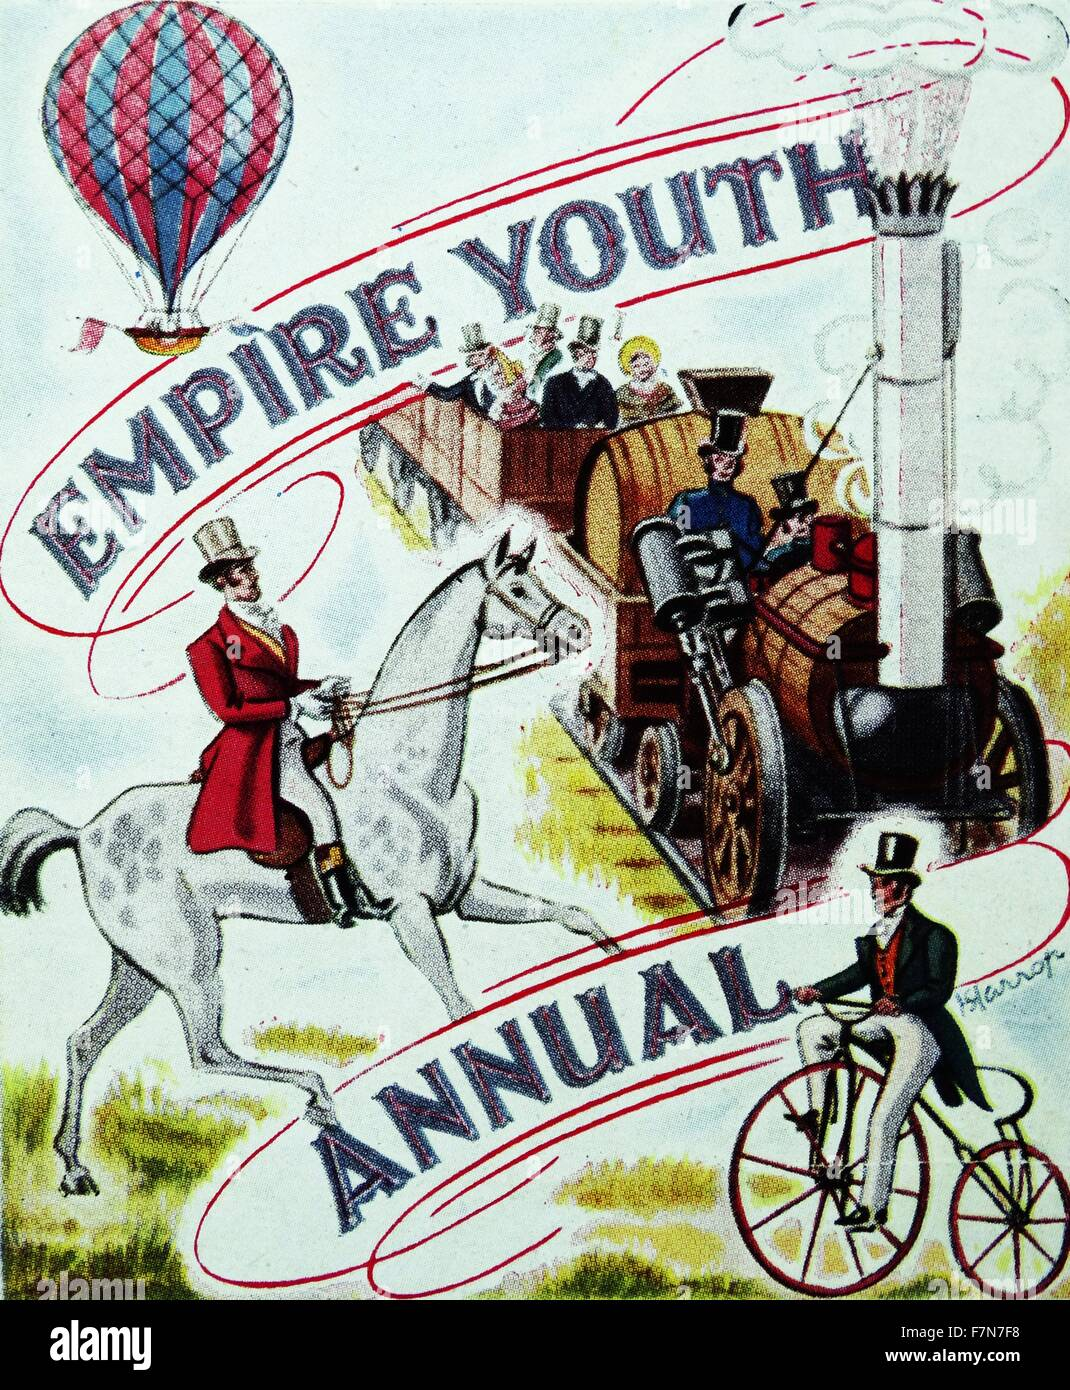 Cover of 'Empire Youth Annual'. - Stock Image